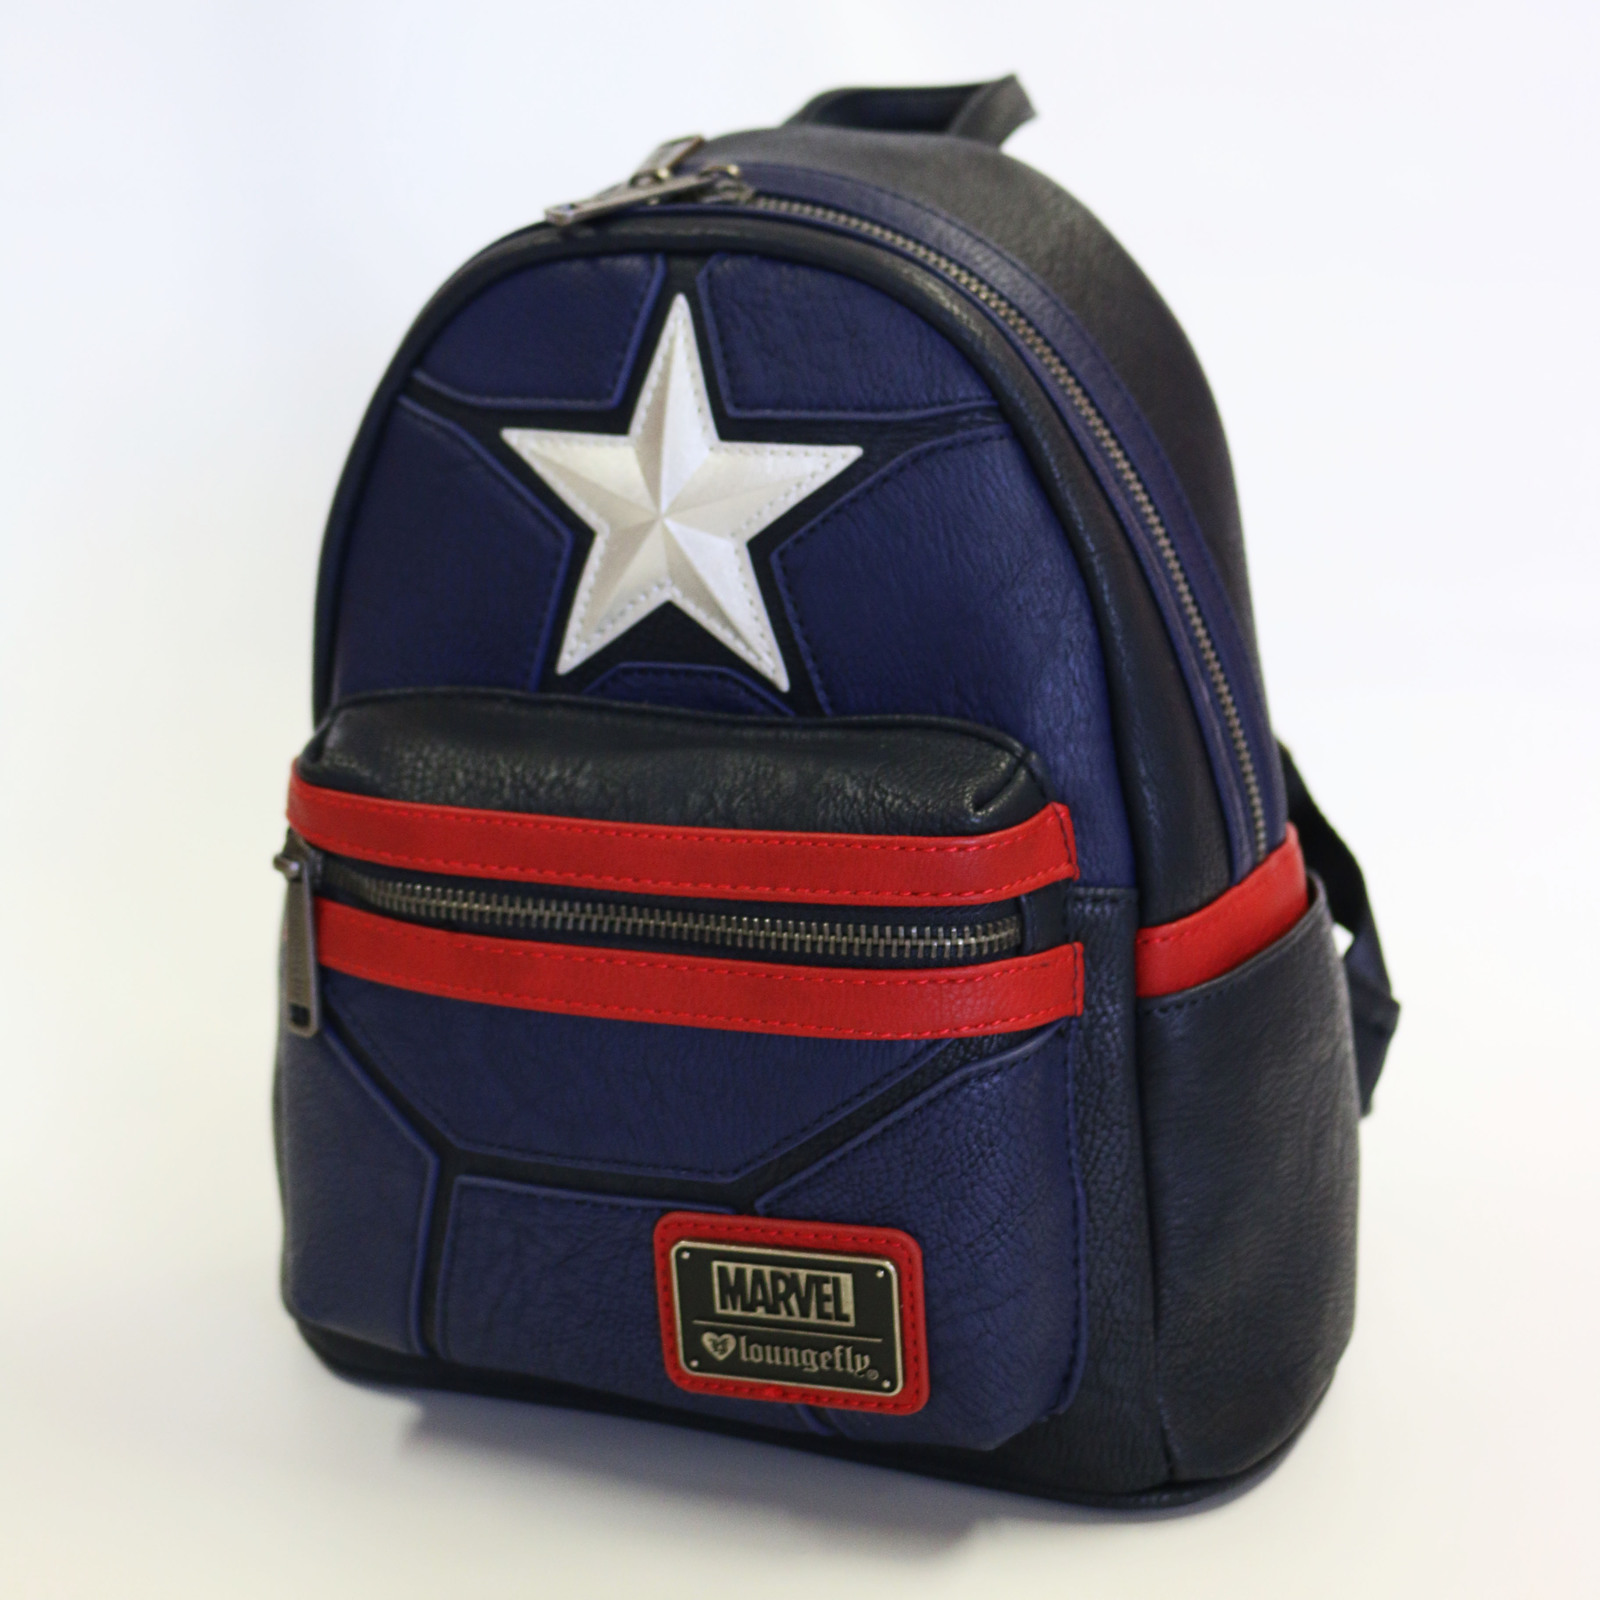 ... Loungefly  Marvel Captain America - Mini Star Backpack image 0f80c8d2bc8e5